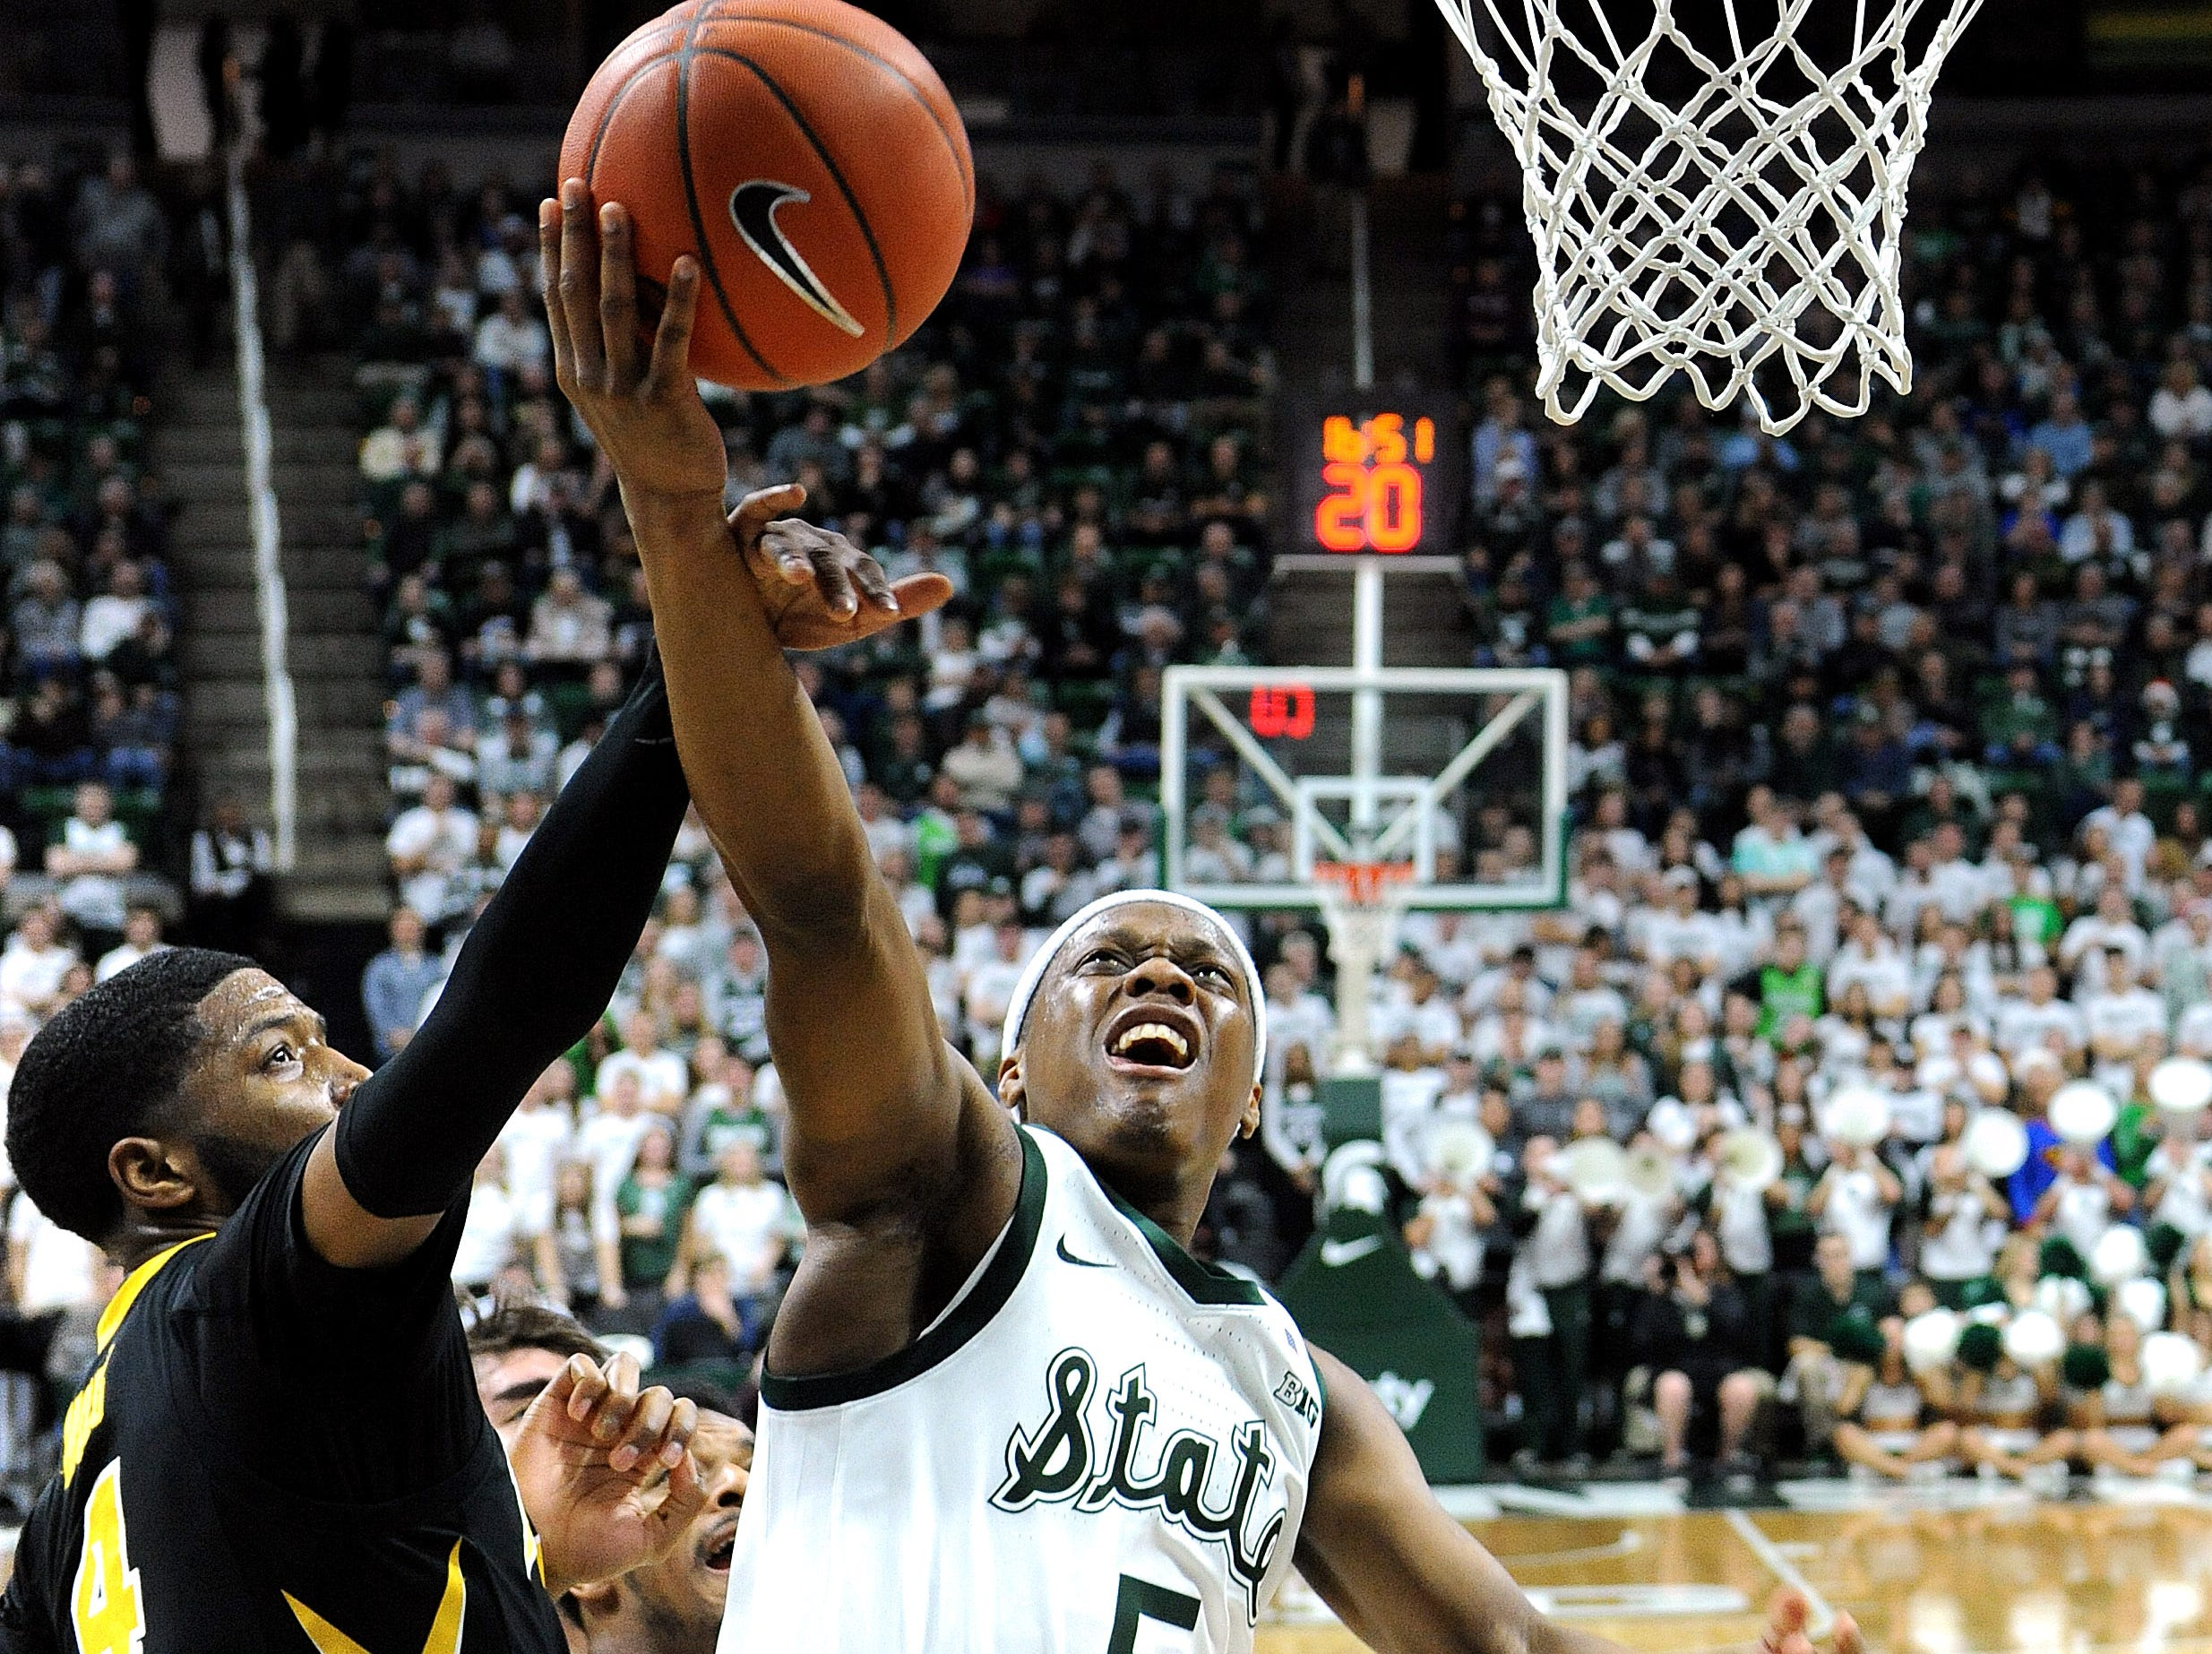 Cassius Winston gets fouled by Isaiah Moss (4) under the Spartan basket in the first half.